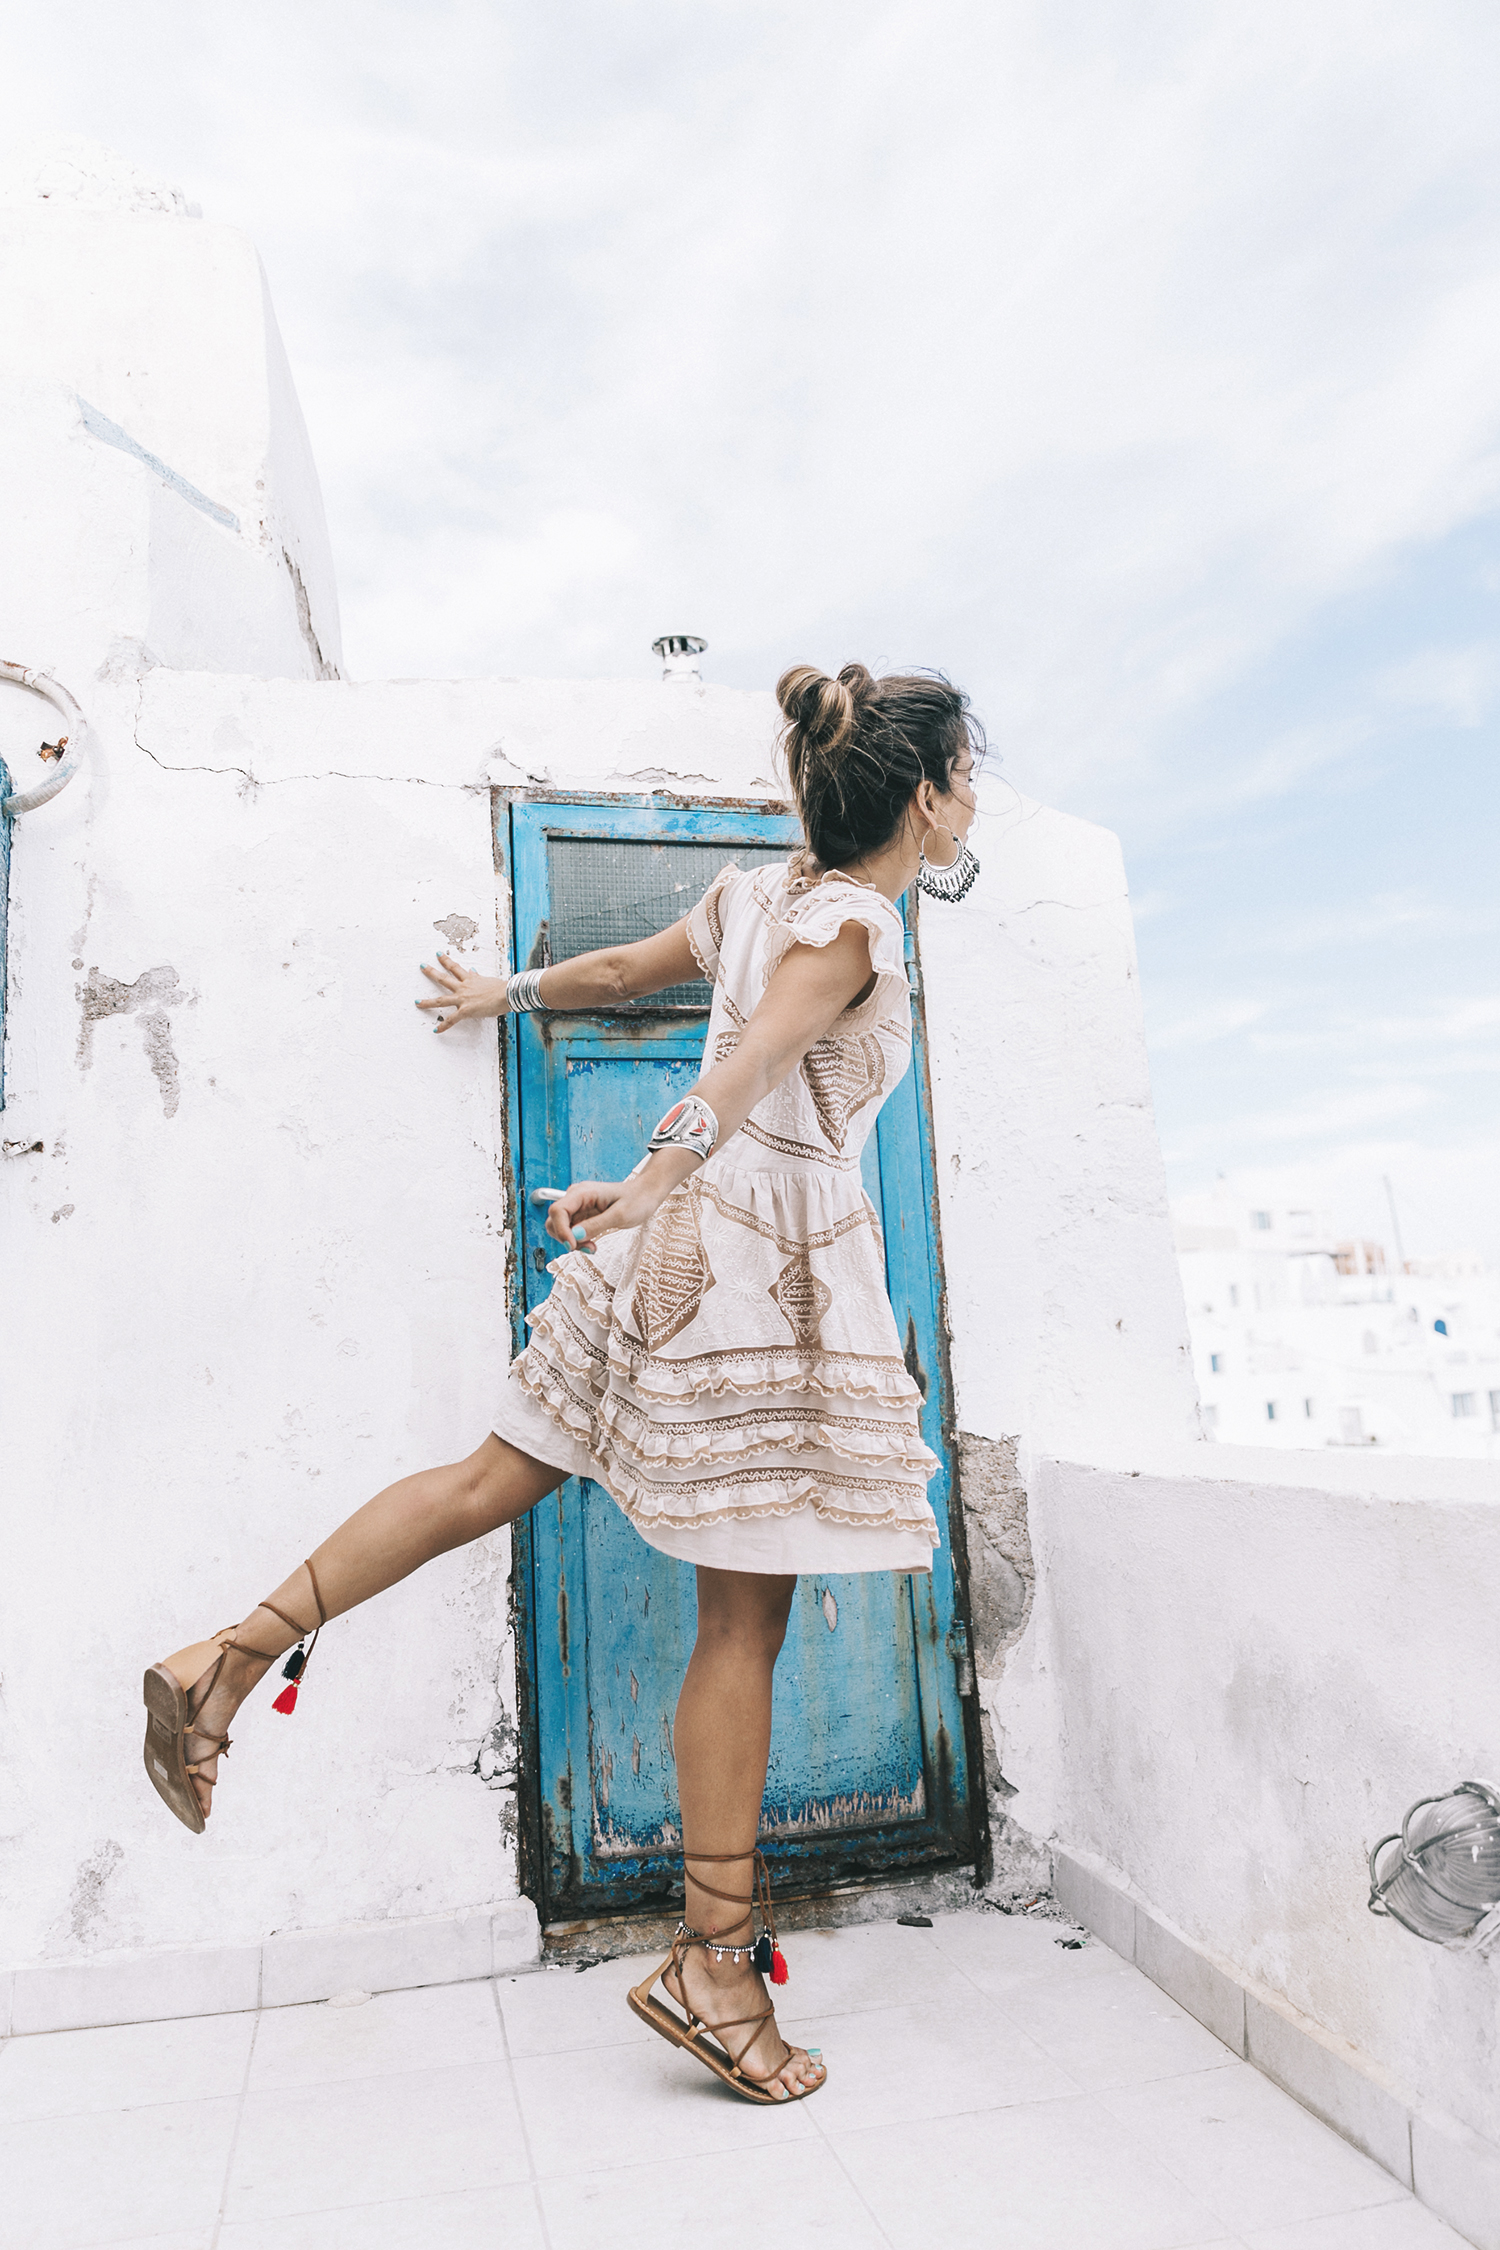 Chloe_Bag-Faye_Bag-For_Love_And_Lemons-Dress-Topknot-Soludos_Escapes-Soludos_Espadrilles-Summer-Santorini-Collage_Vintage-114